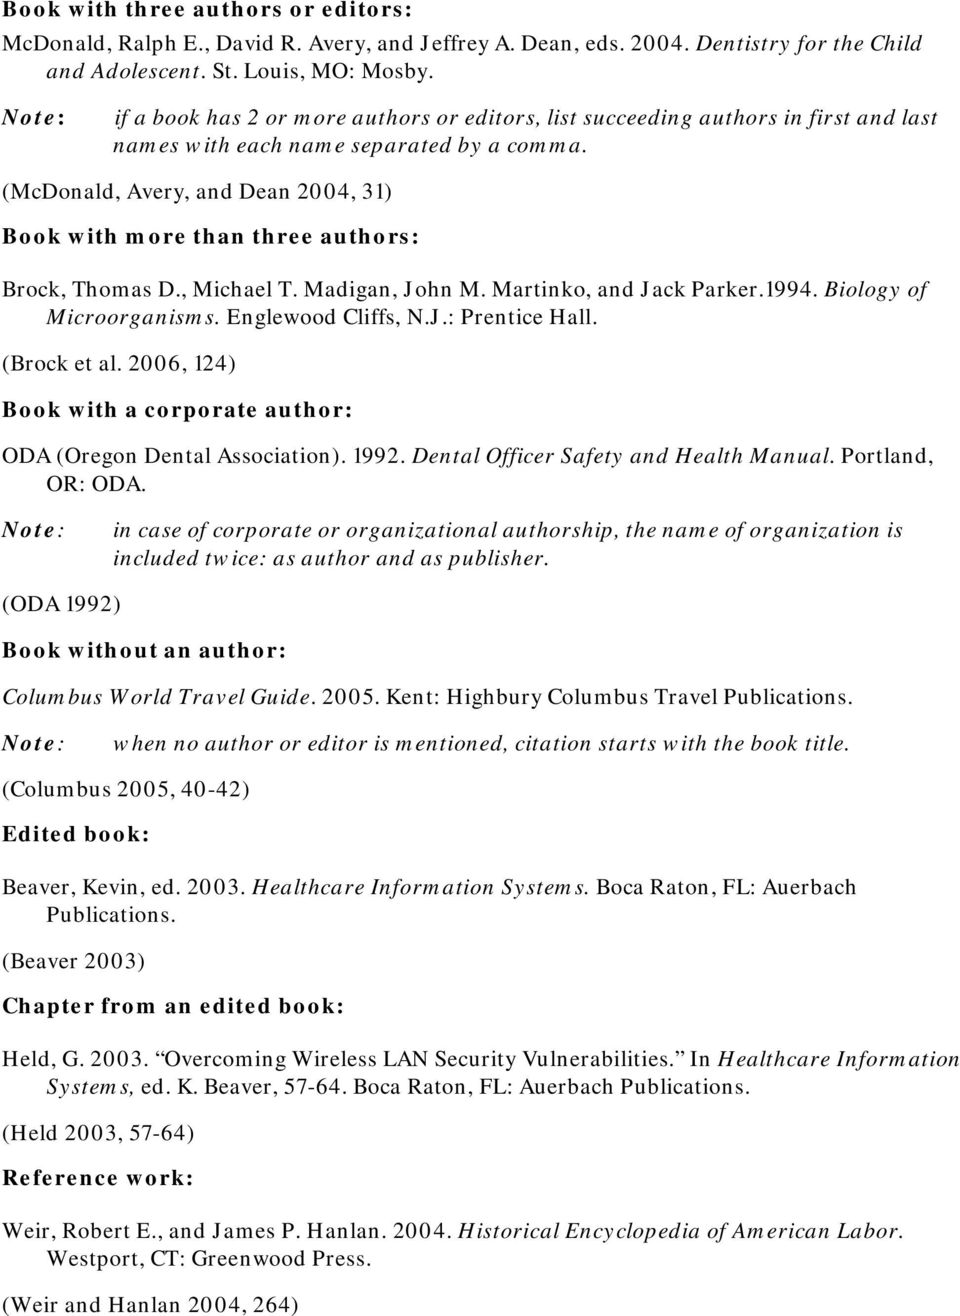 How To Cite A Website No Author Elements That Make Up An Apa Citation  Howtoinclude (